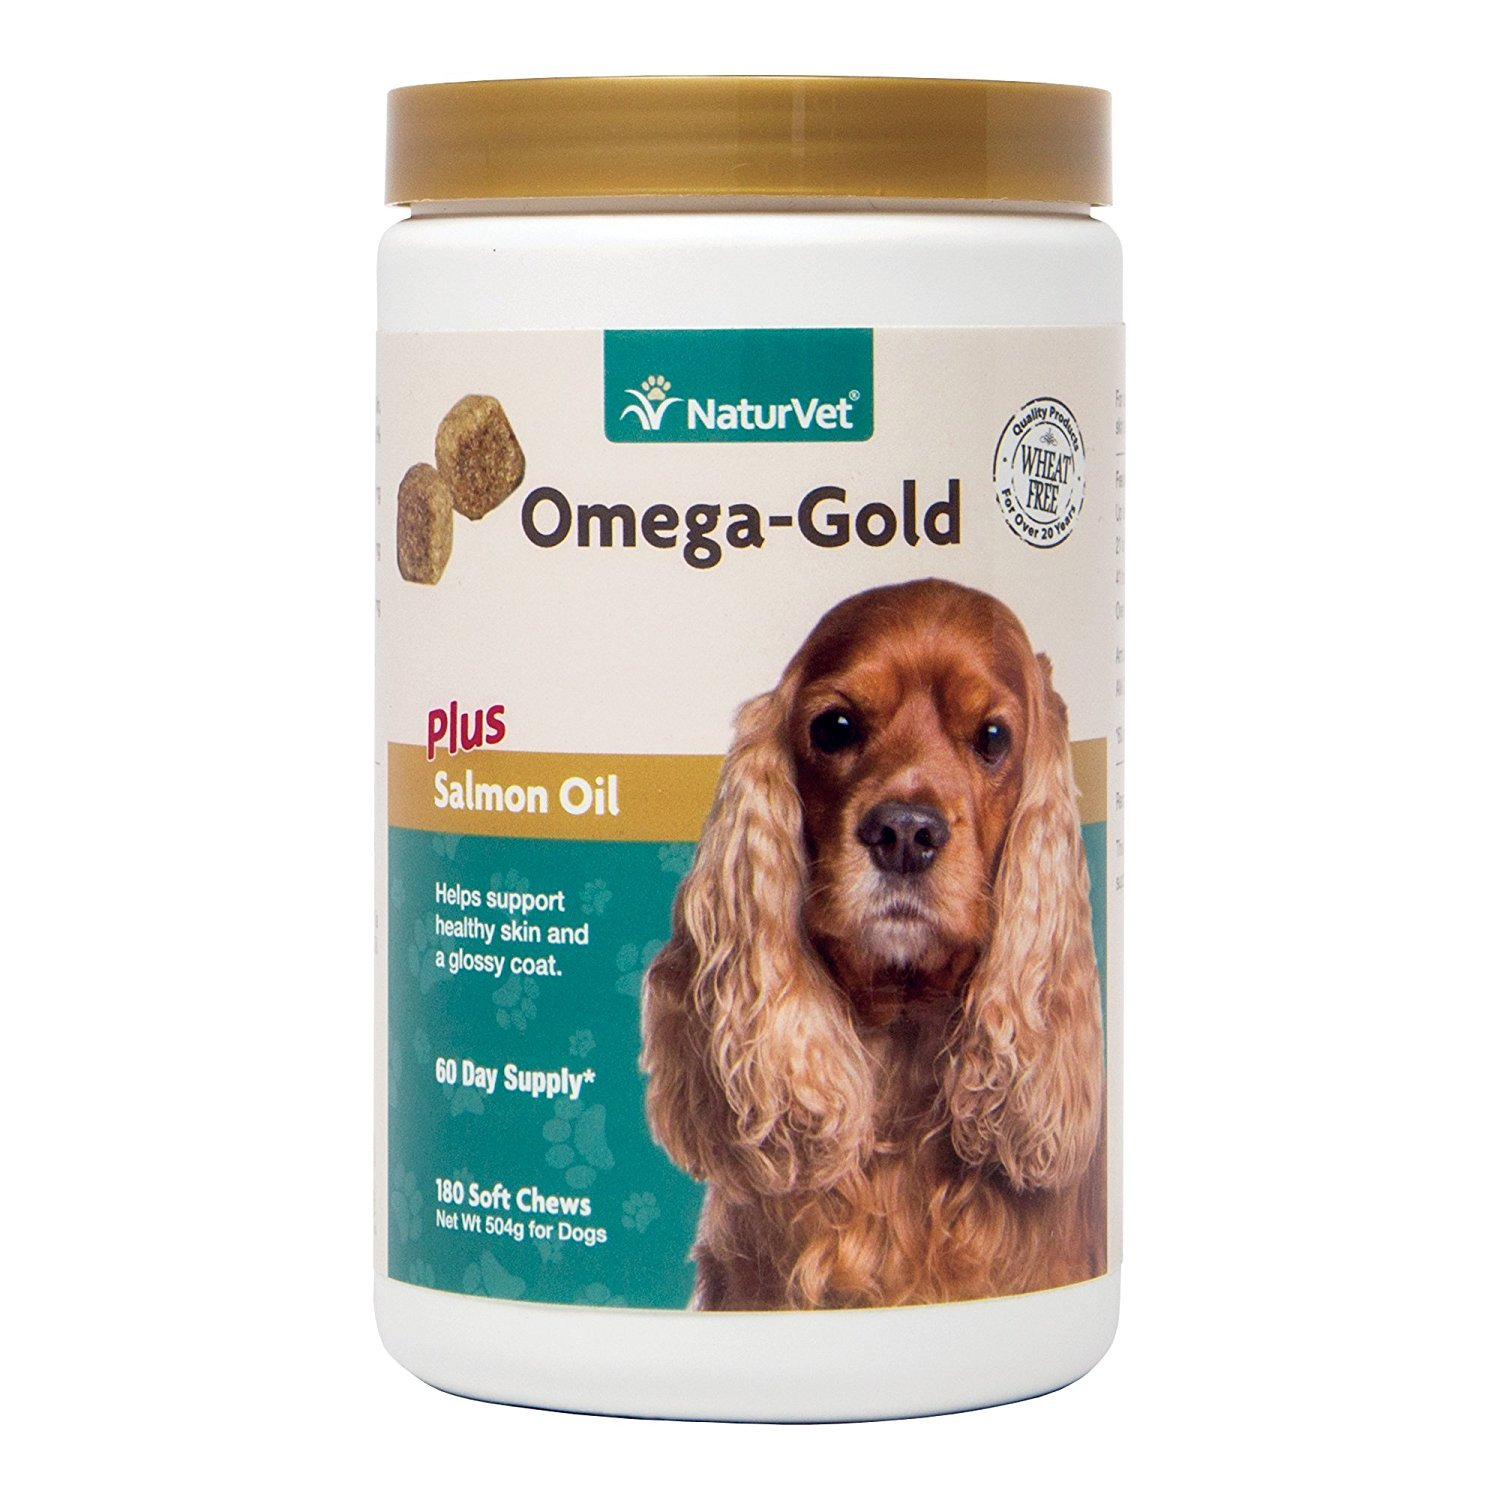 NaturVet Omega-Gold Plus Salmon Oil for Dogs, 180 ct Soft Chews, Made in USA by NaturVet